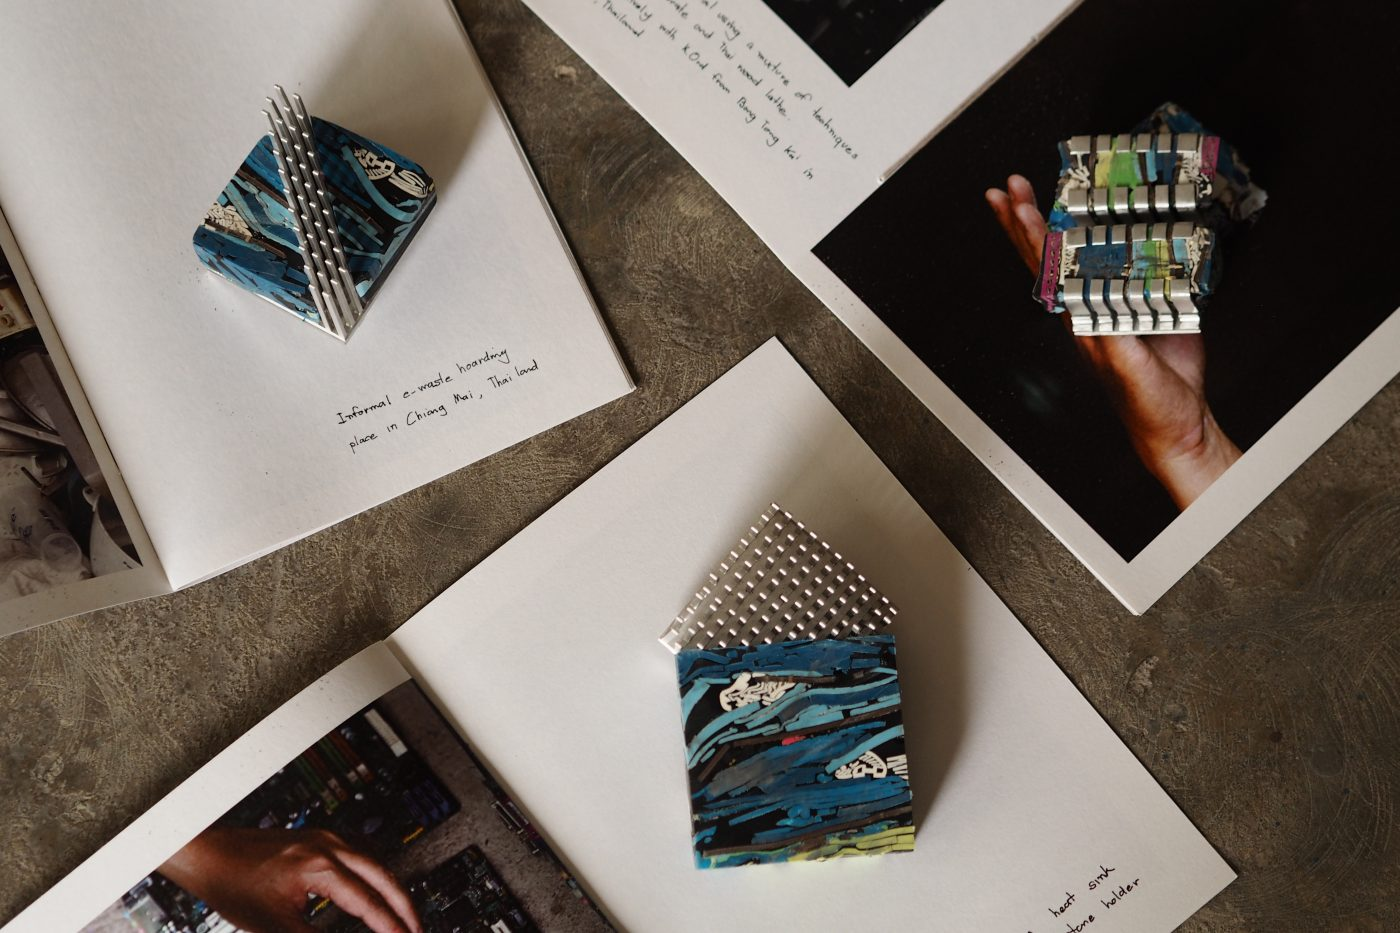 Small compositions of coloured, plastic composite material and metal alongside images of them, in notebooks with notes on the pages